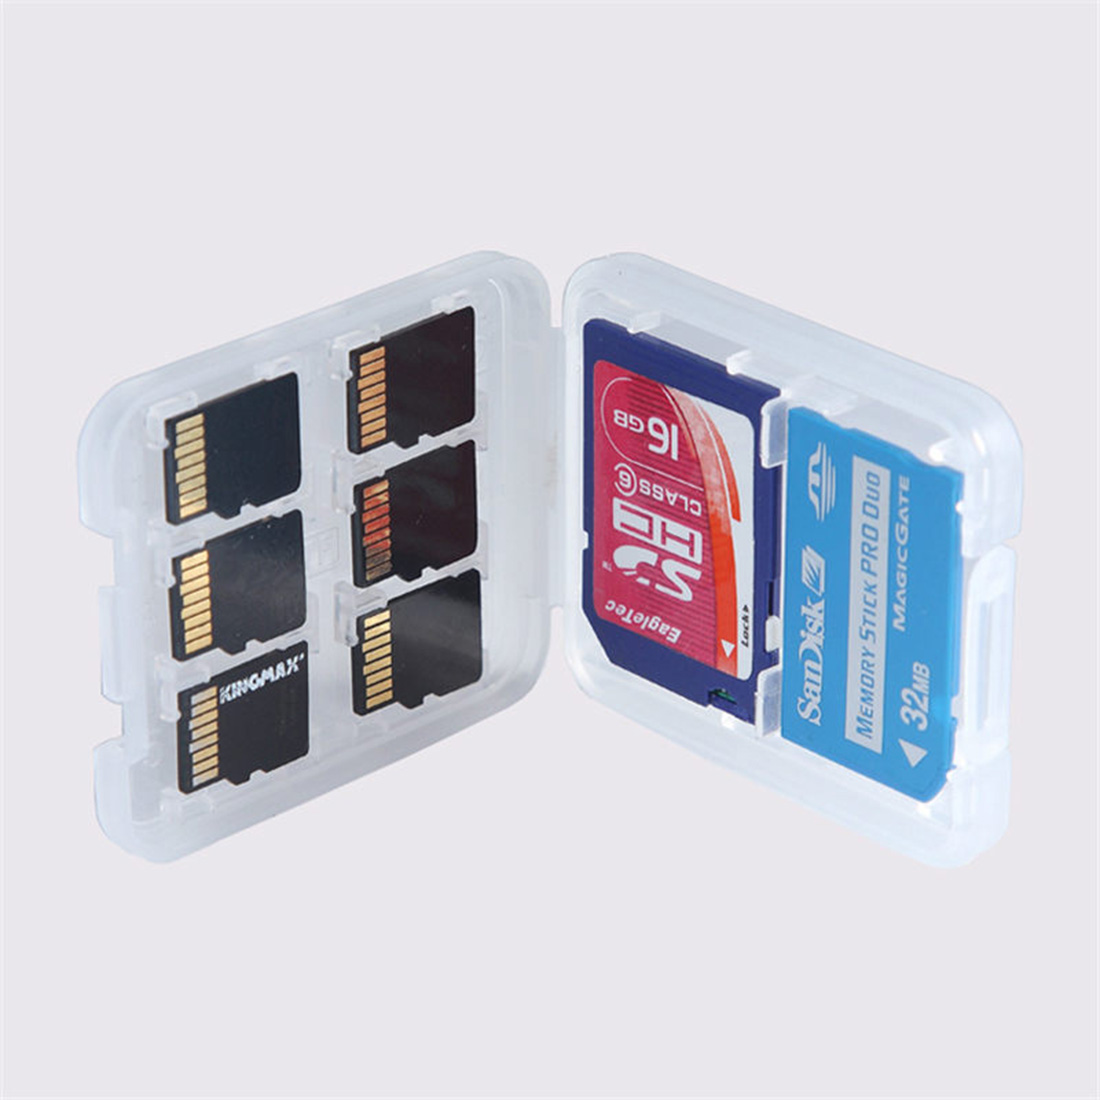 NOYOKERE 8 In 1 Plastic Micro For SD SDHC TF MS Memory Card Storage Case Box Protector